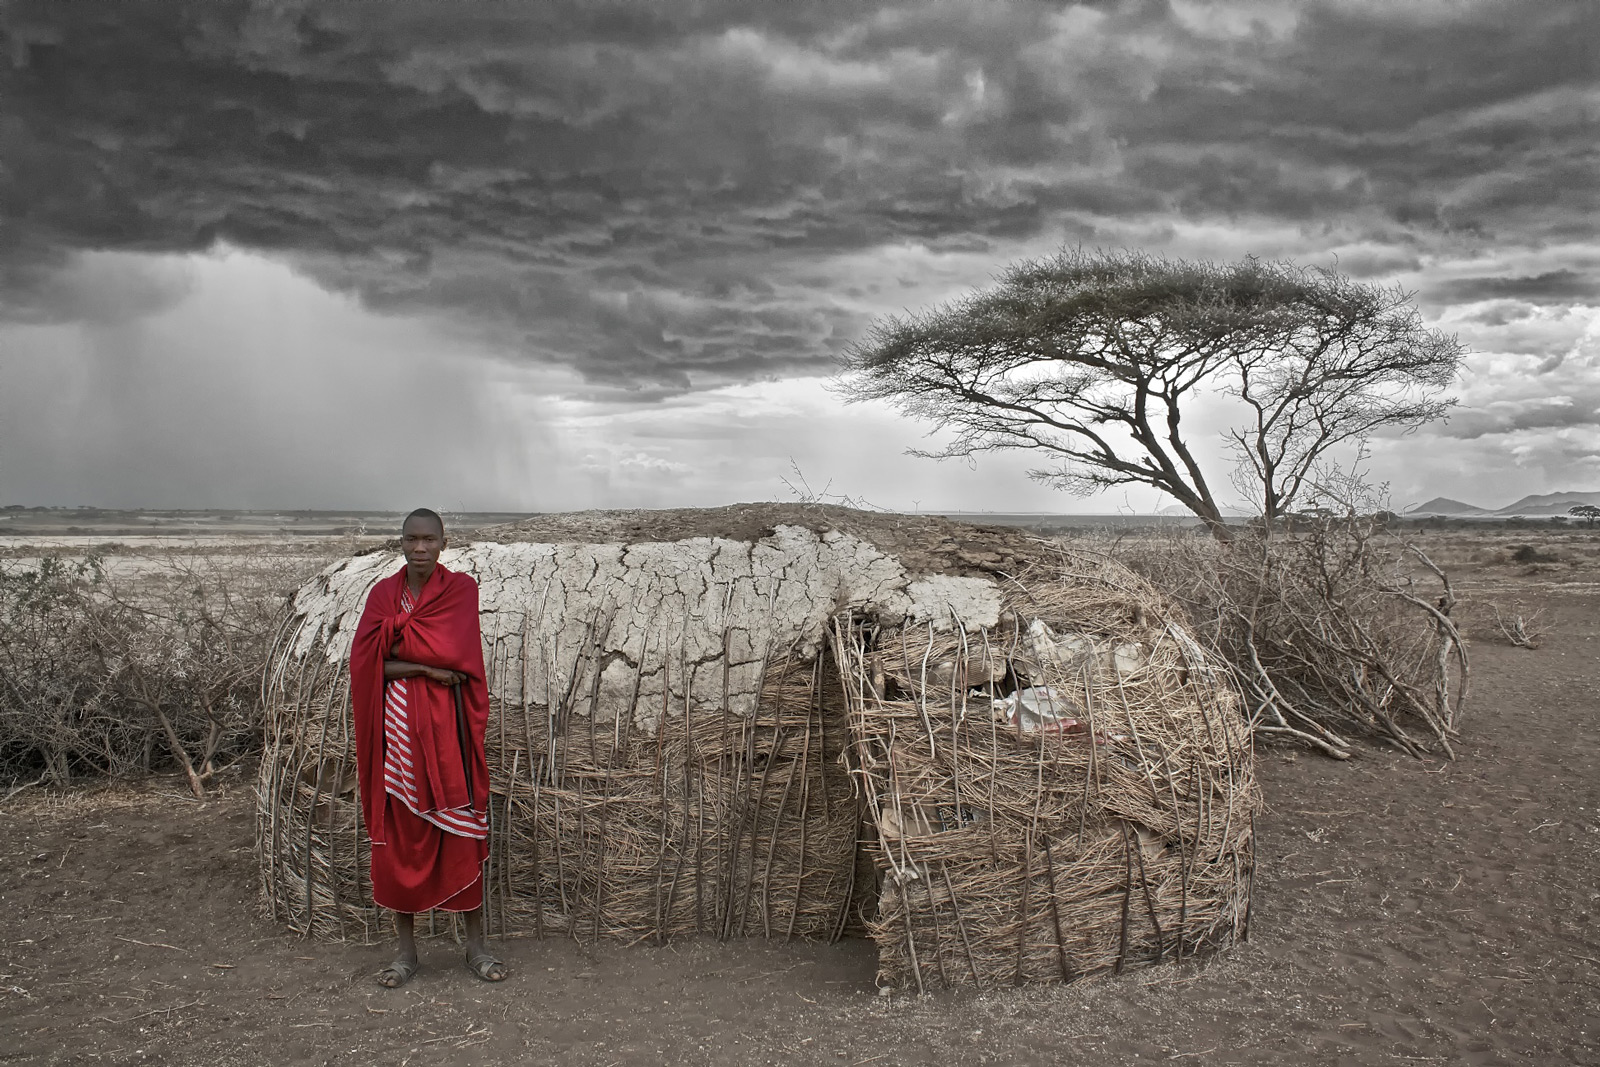 A proud Maasai warrior stands by his hut as a summer storm brews on the outskirts of the Serengeti National Park in Tanzania ©Andrew MacDonald